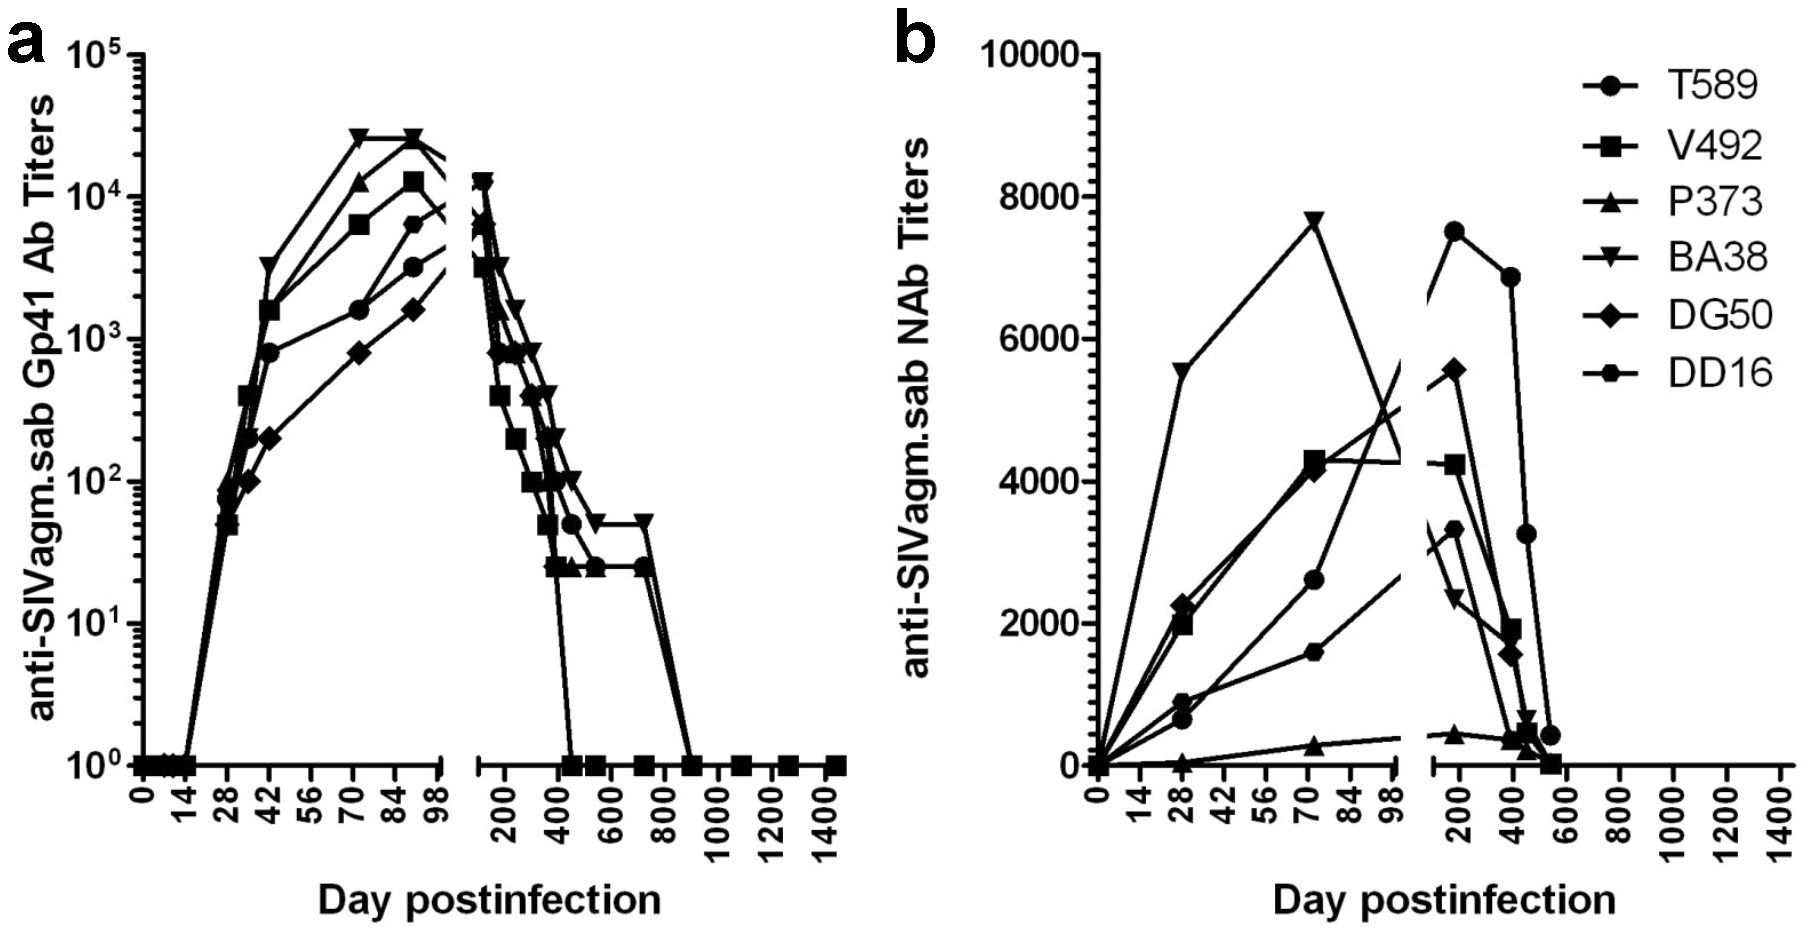 Control of SIVagm replication in RMs was confirmed by seroreversion of anti-SIVagm binding and neutralizing antibodies.